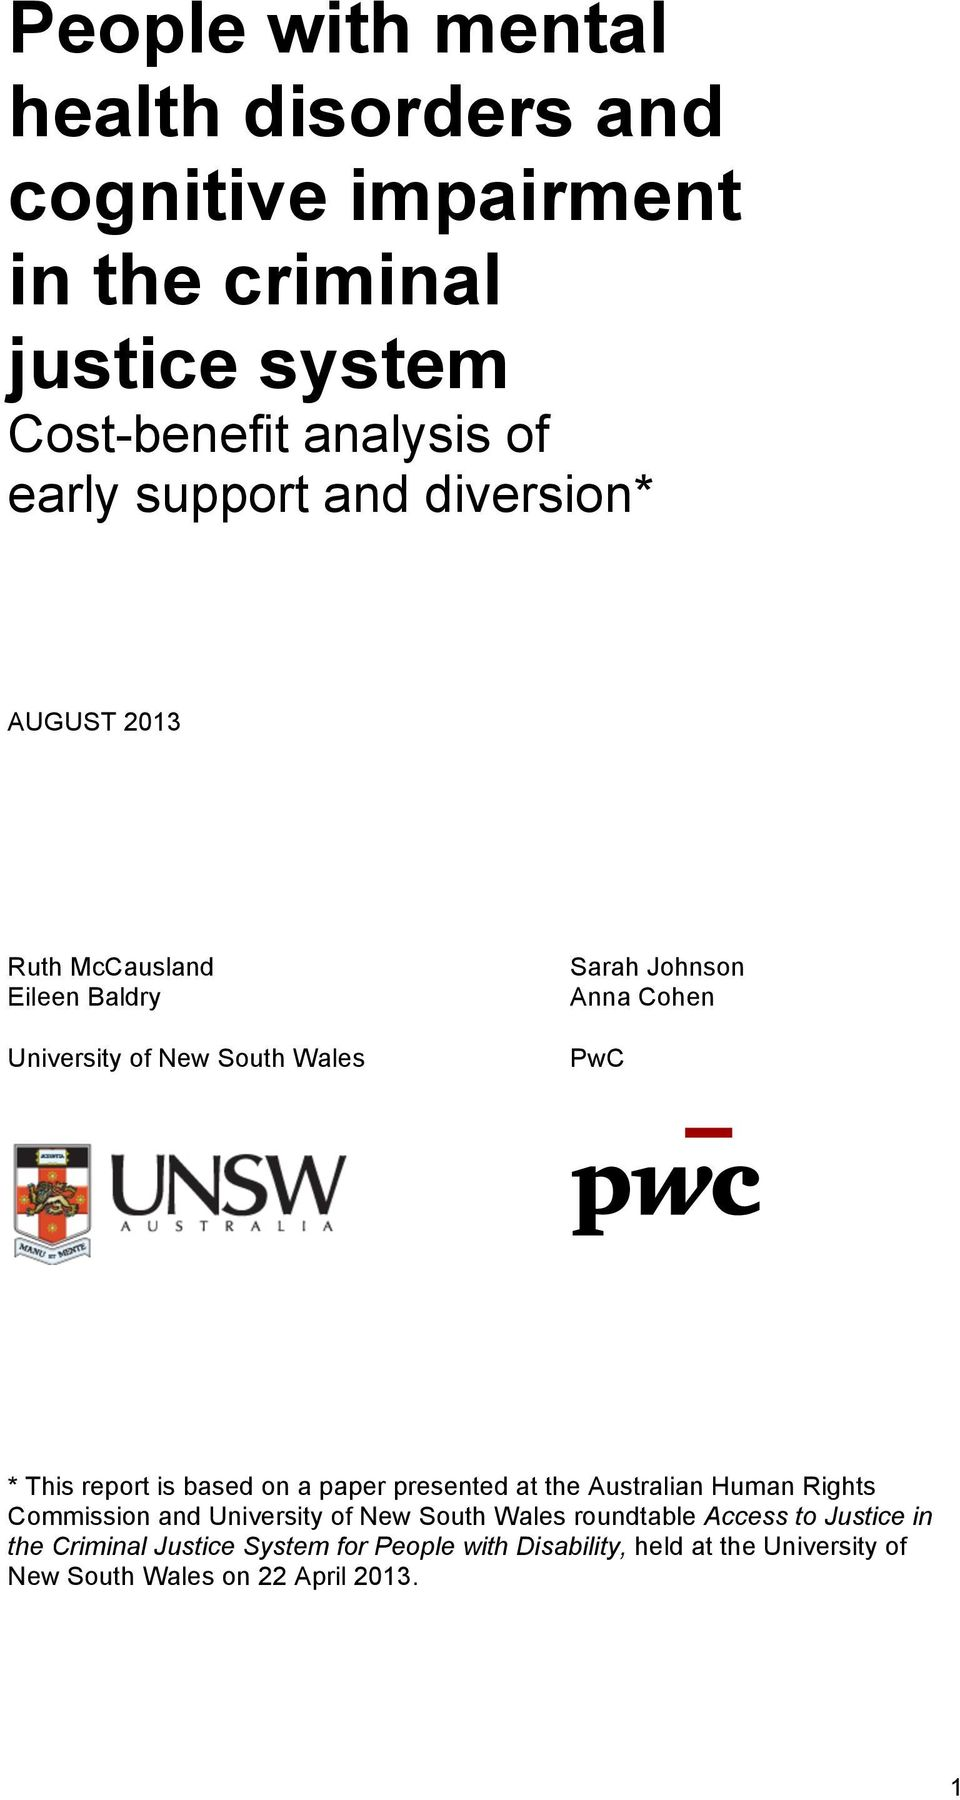 This report is based on a paper presented at the Australian Human Rights Commission and University of New South Wales roundtable